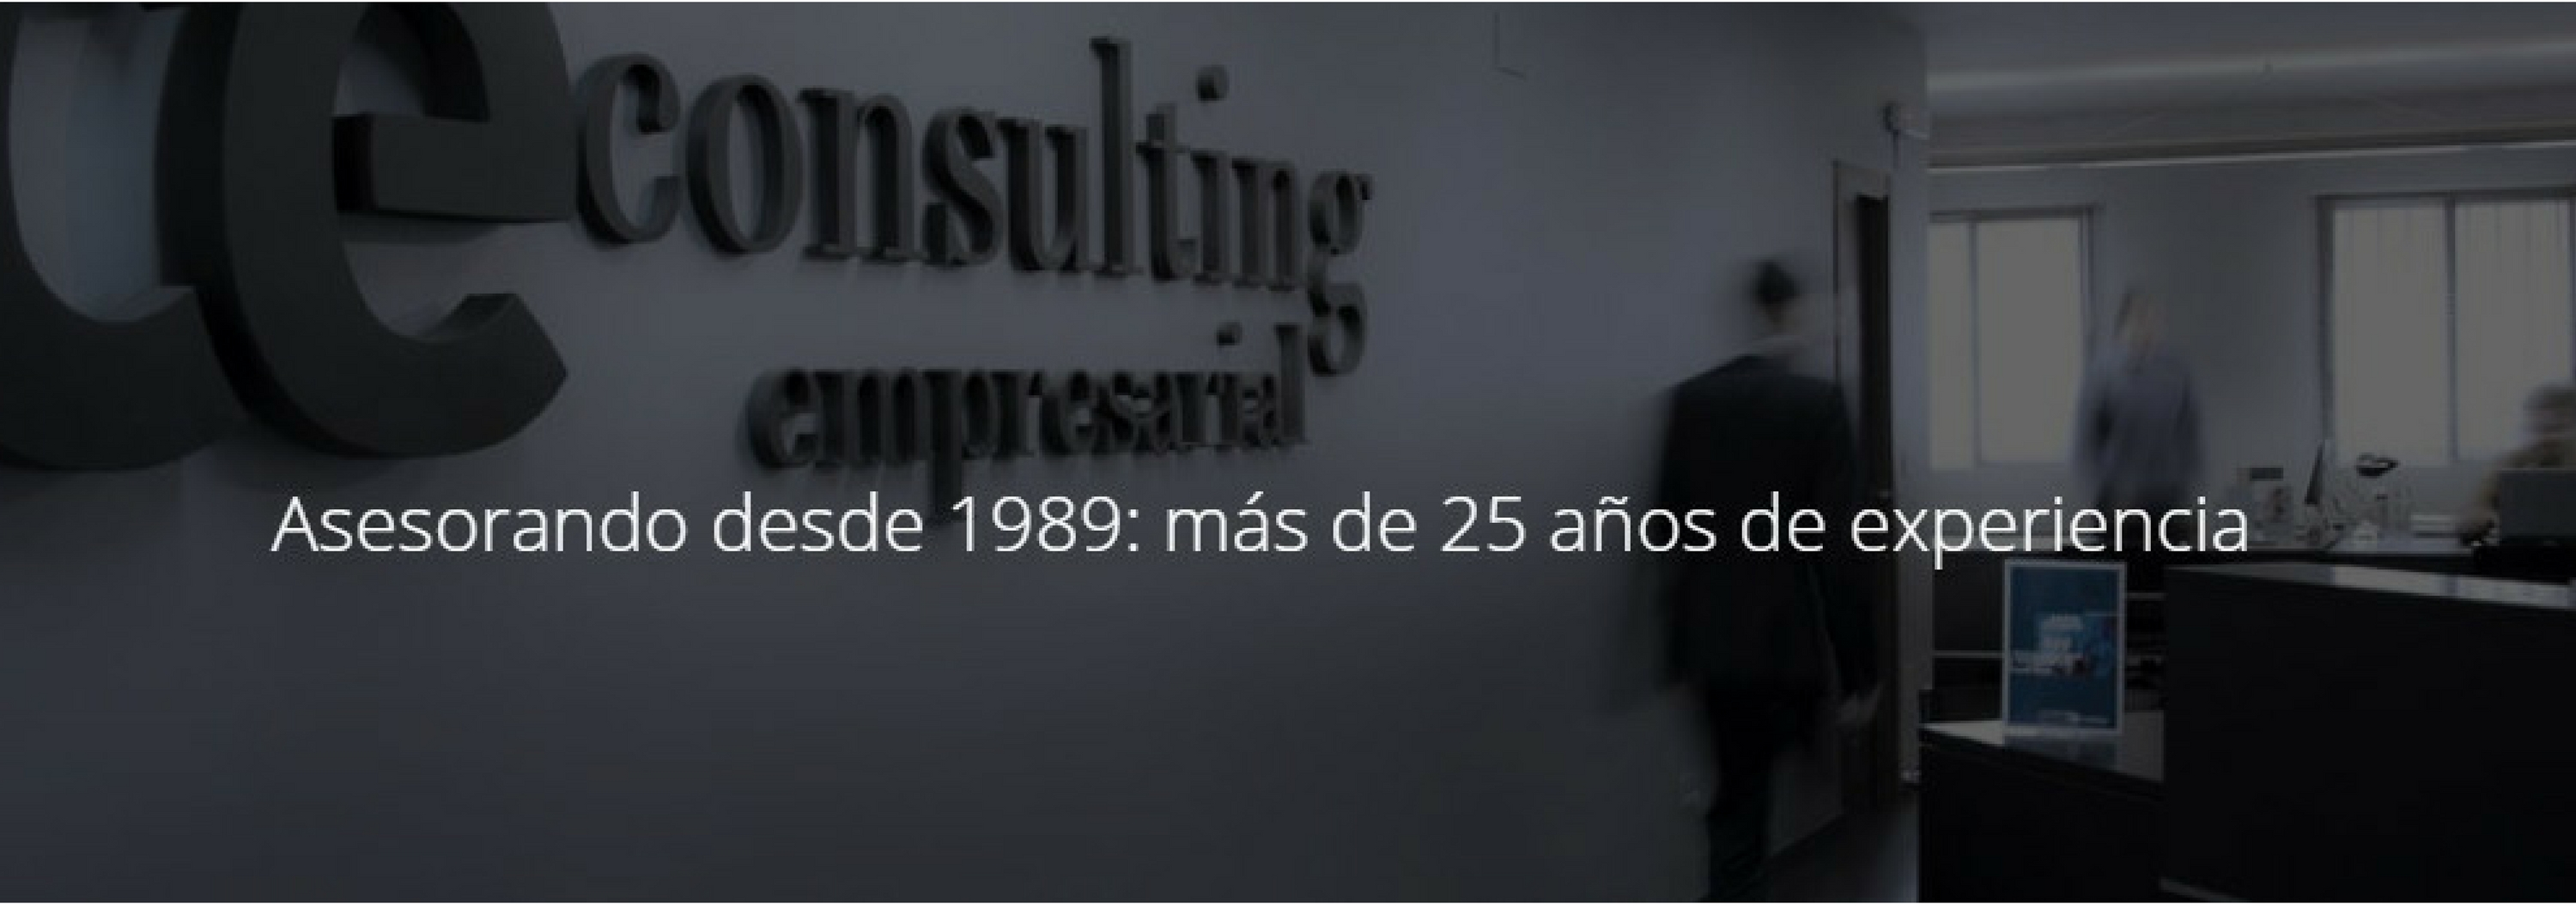 Consulting empresarial Murcia, Ceconsulting Murcia, Asesoramiento empresarial Murcia,